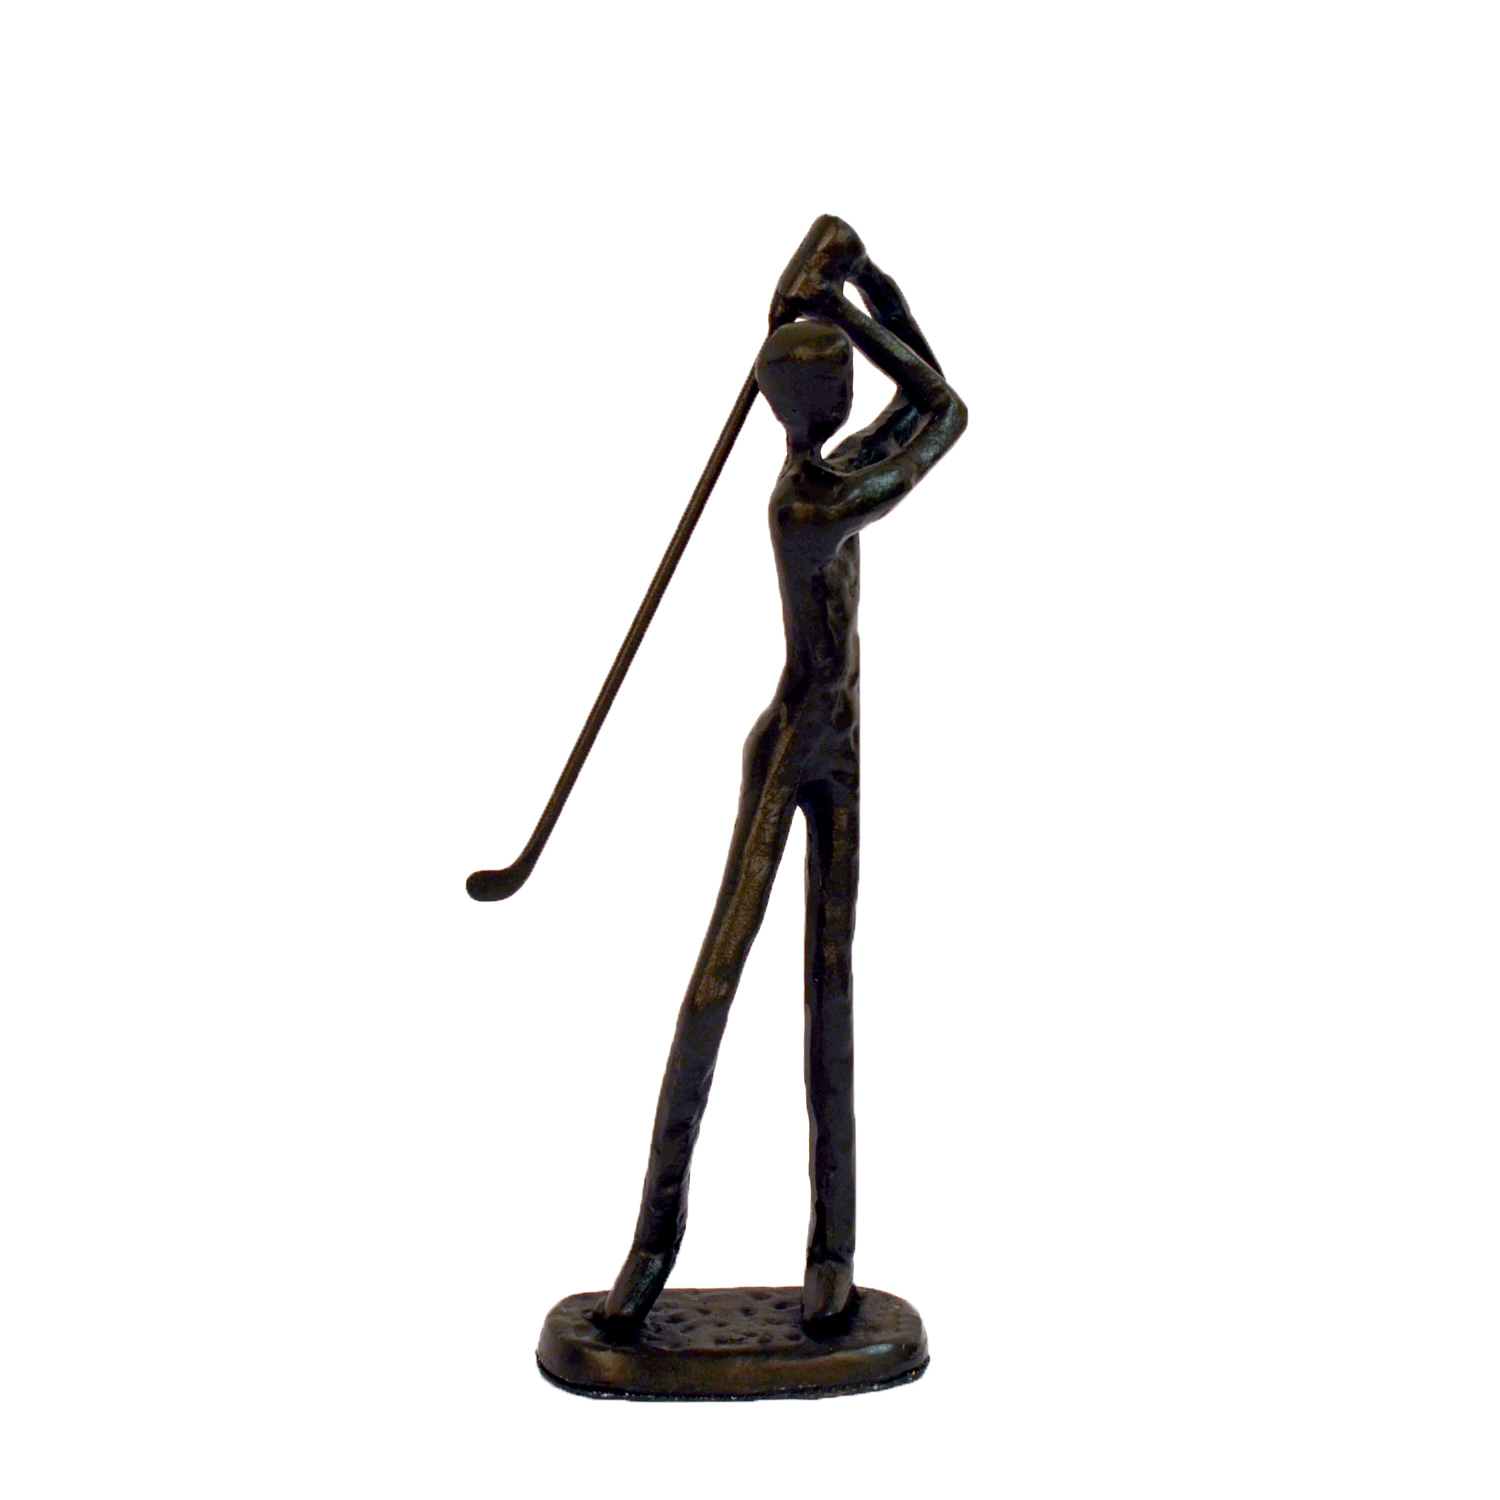 Elur Golfer Iron Statue Figurine 19cm in Mocha Brown - Ruby's Garden Boutique